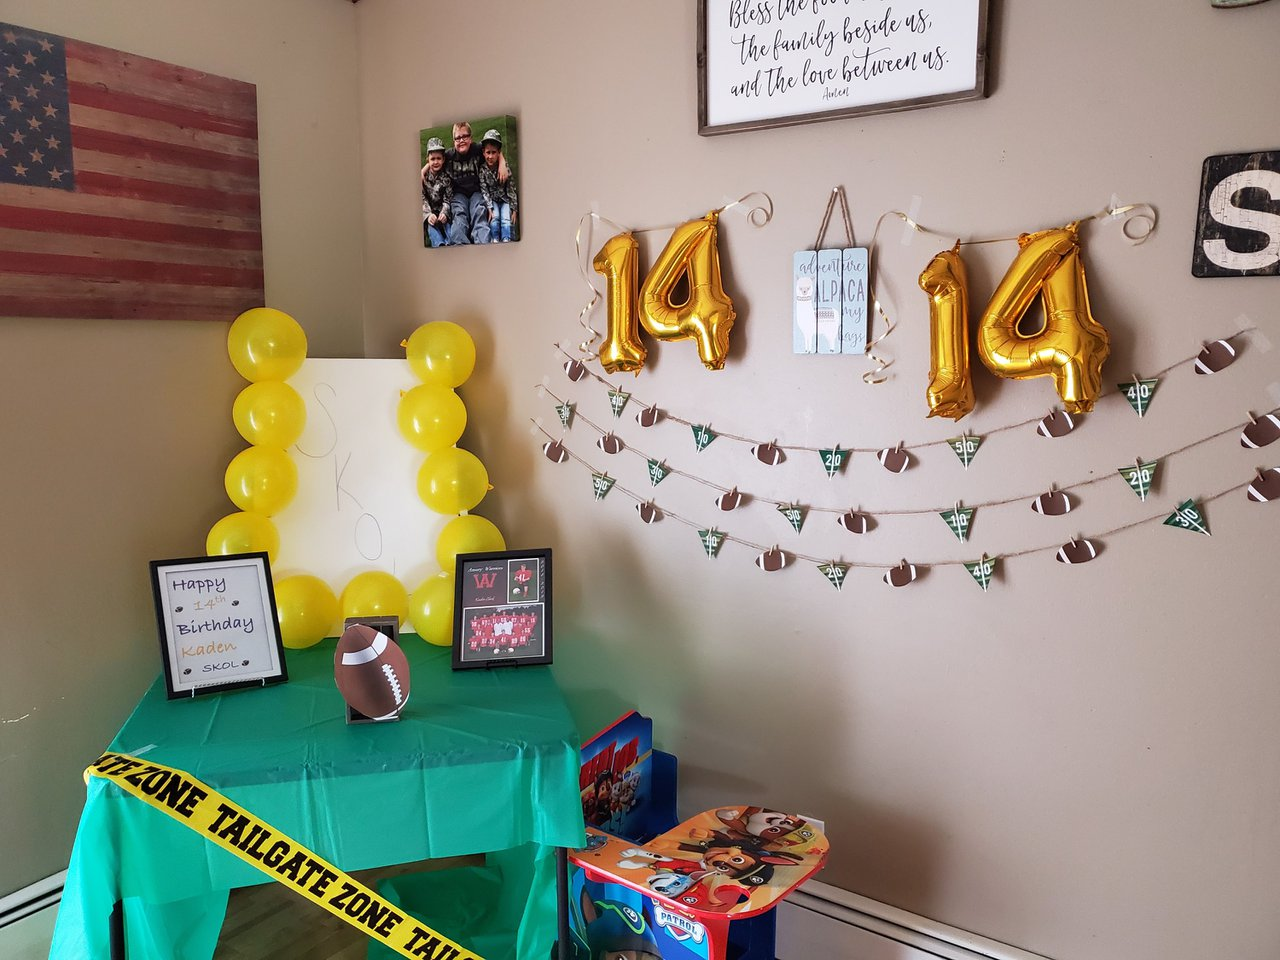 Kaden's Birthday  photo 20190908_115610.jpg